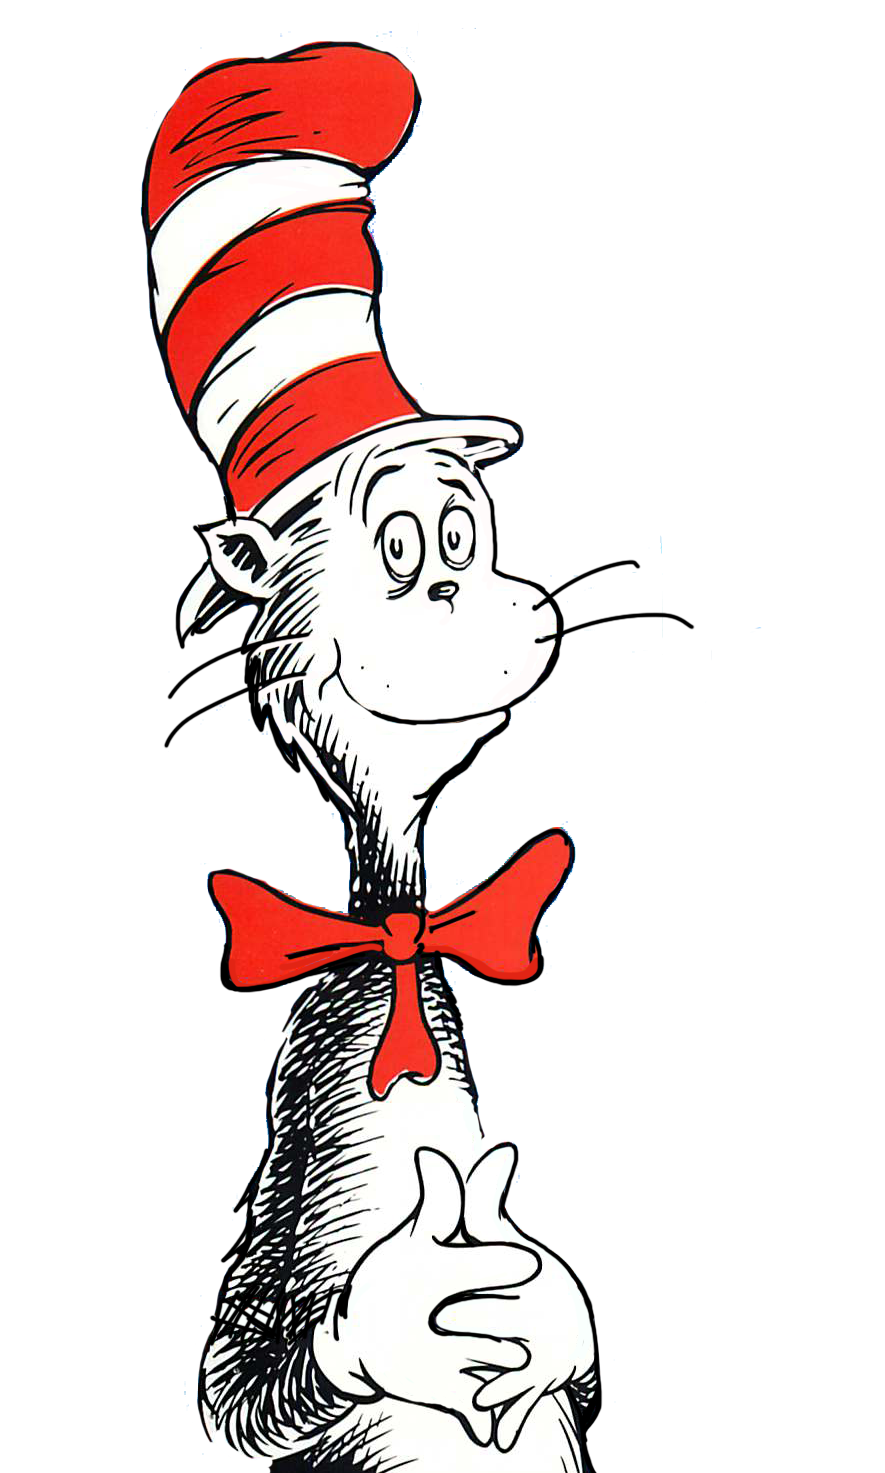 In pictures the hat cat of